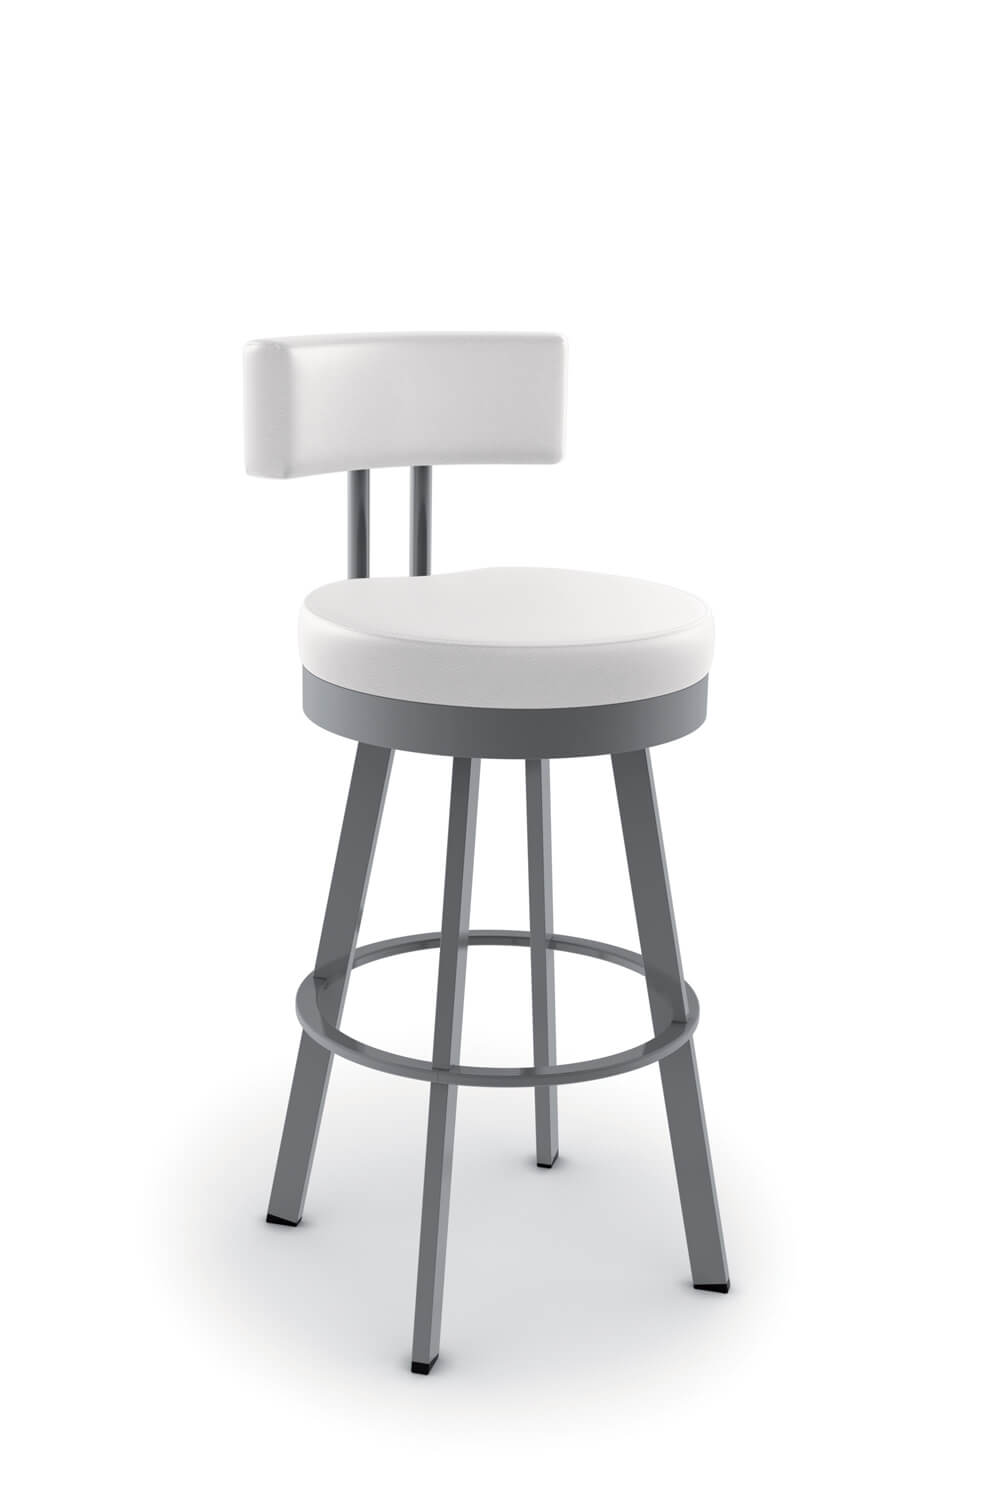 Tremendous Barry Swivel Stool Pabps2019 Chair Design Images Pabps2019Com